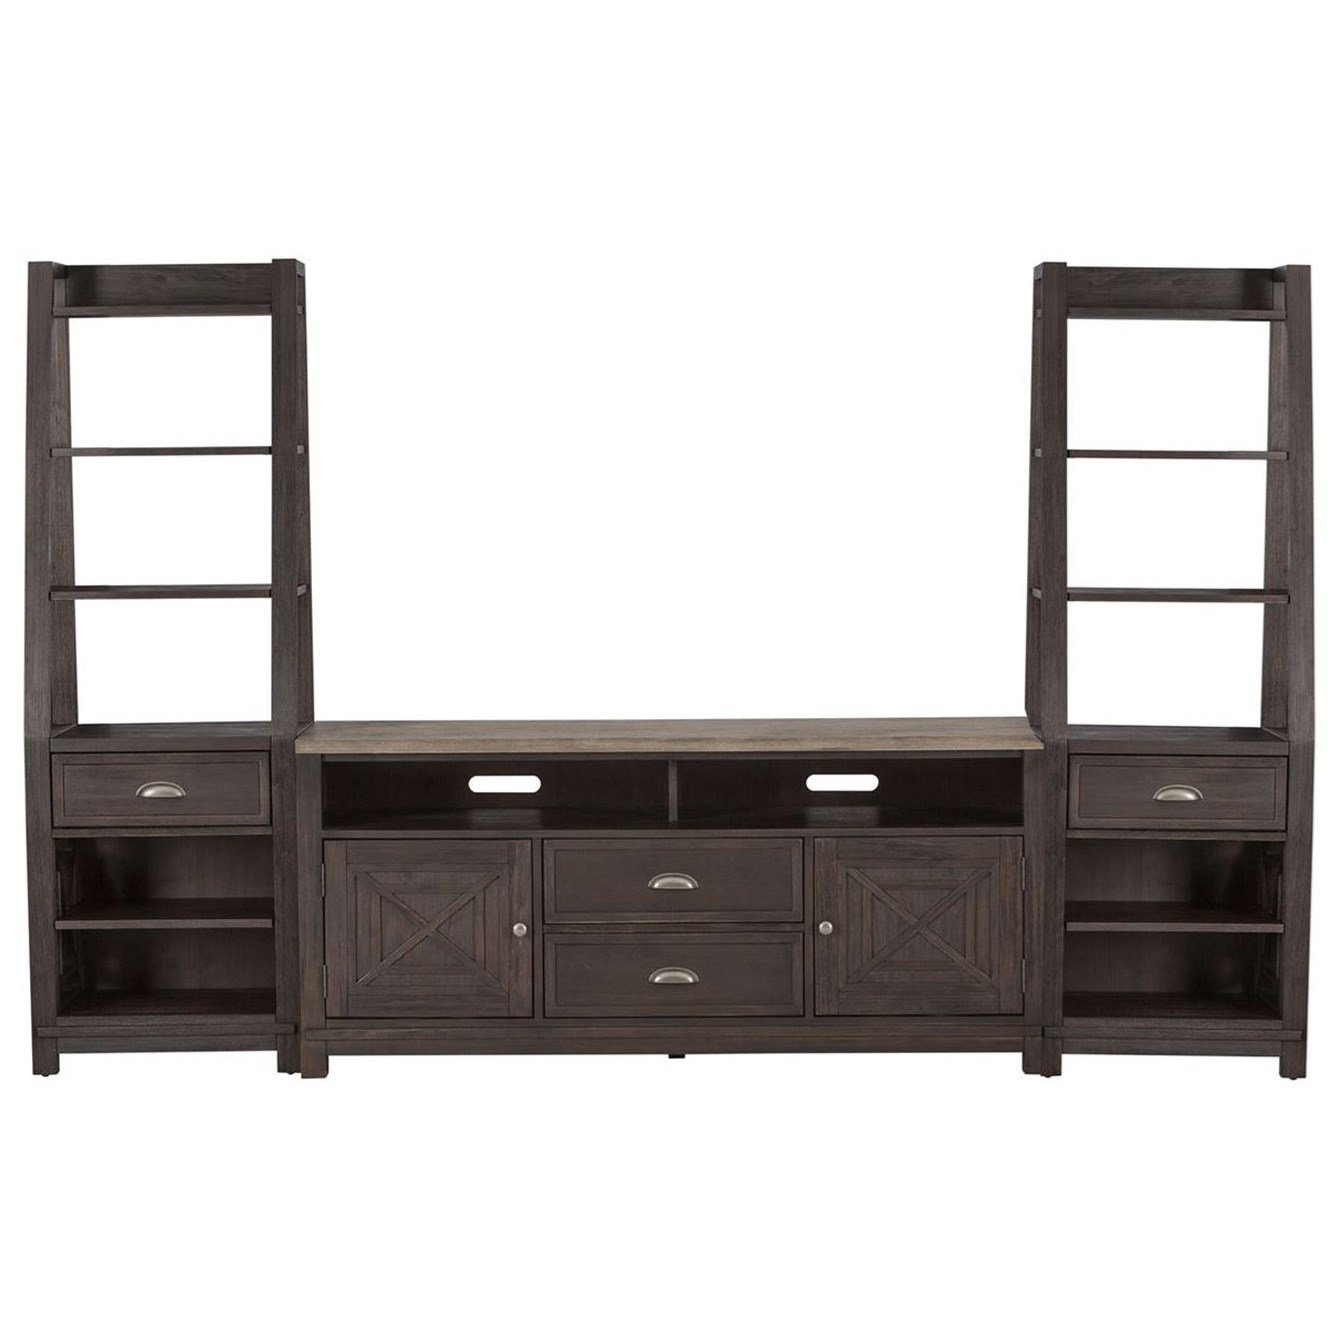 Heatherbrook Entertainment Center with Piers by Liberty Furniture at Darvin Furniture